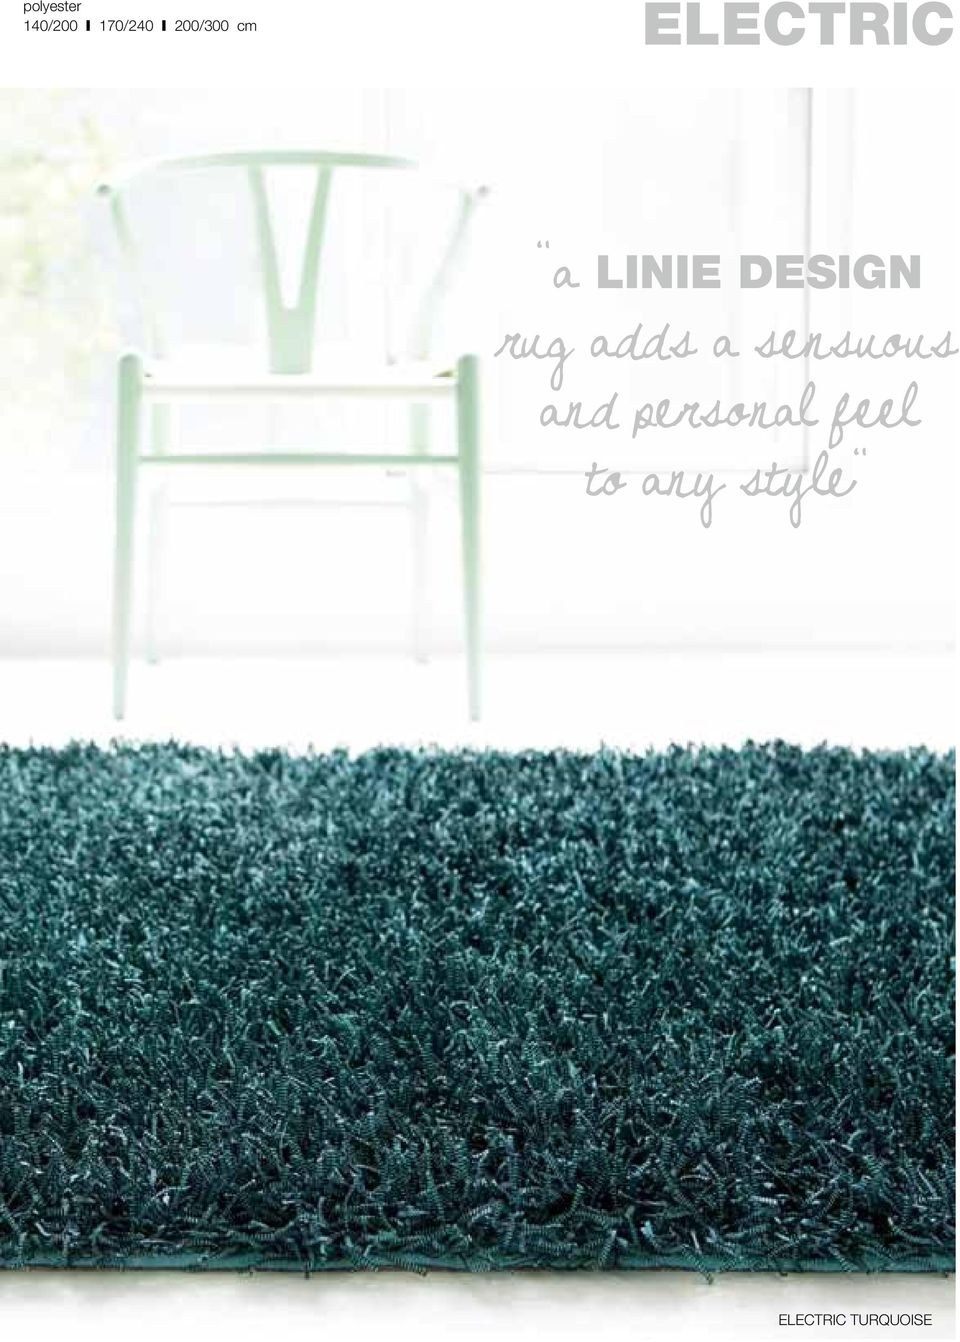 DESIGN rug adds a sensuous and